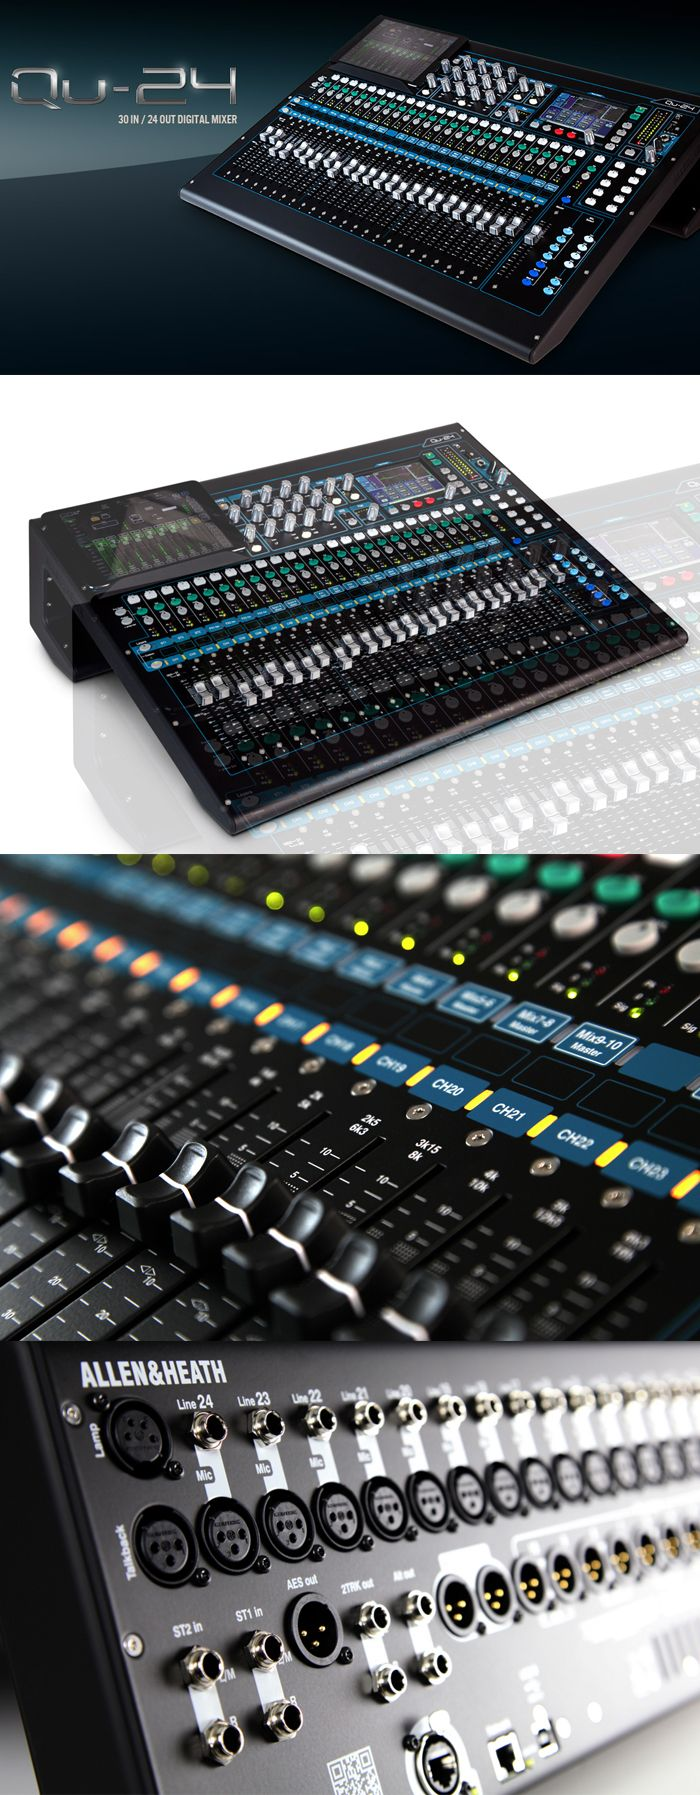 Allen & Heath QU-24C Digital Audio Mixer - Chrome Edition! With its responsive touchscreen, 25 motor faders and acclaimed AnalogiQ recallable preamps, Qu-24 combines exceptional ease of use with class-leading audio performance.